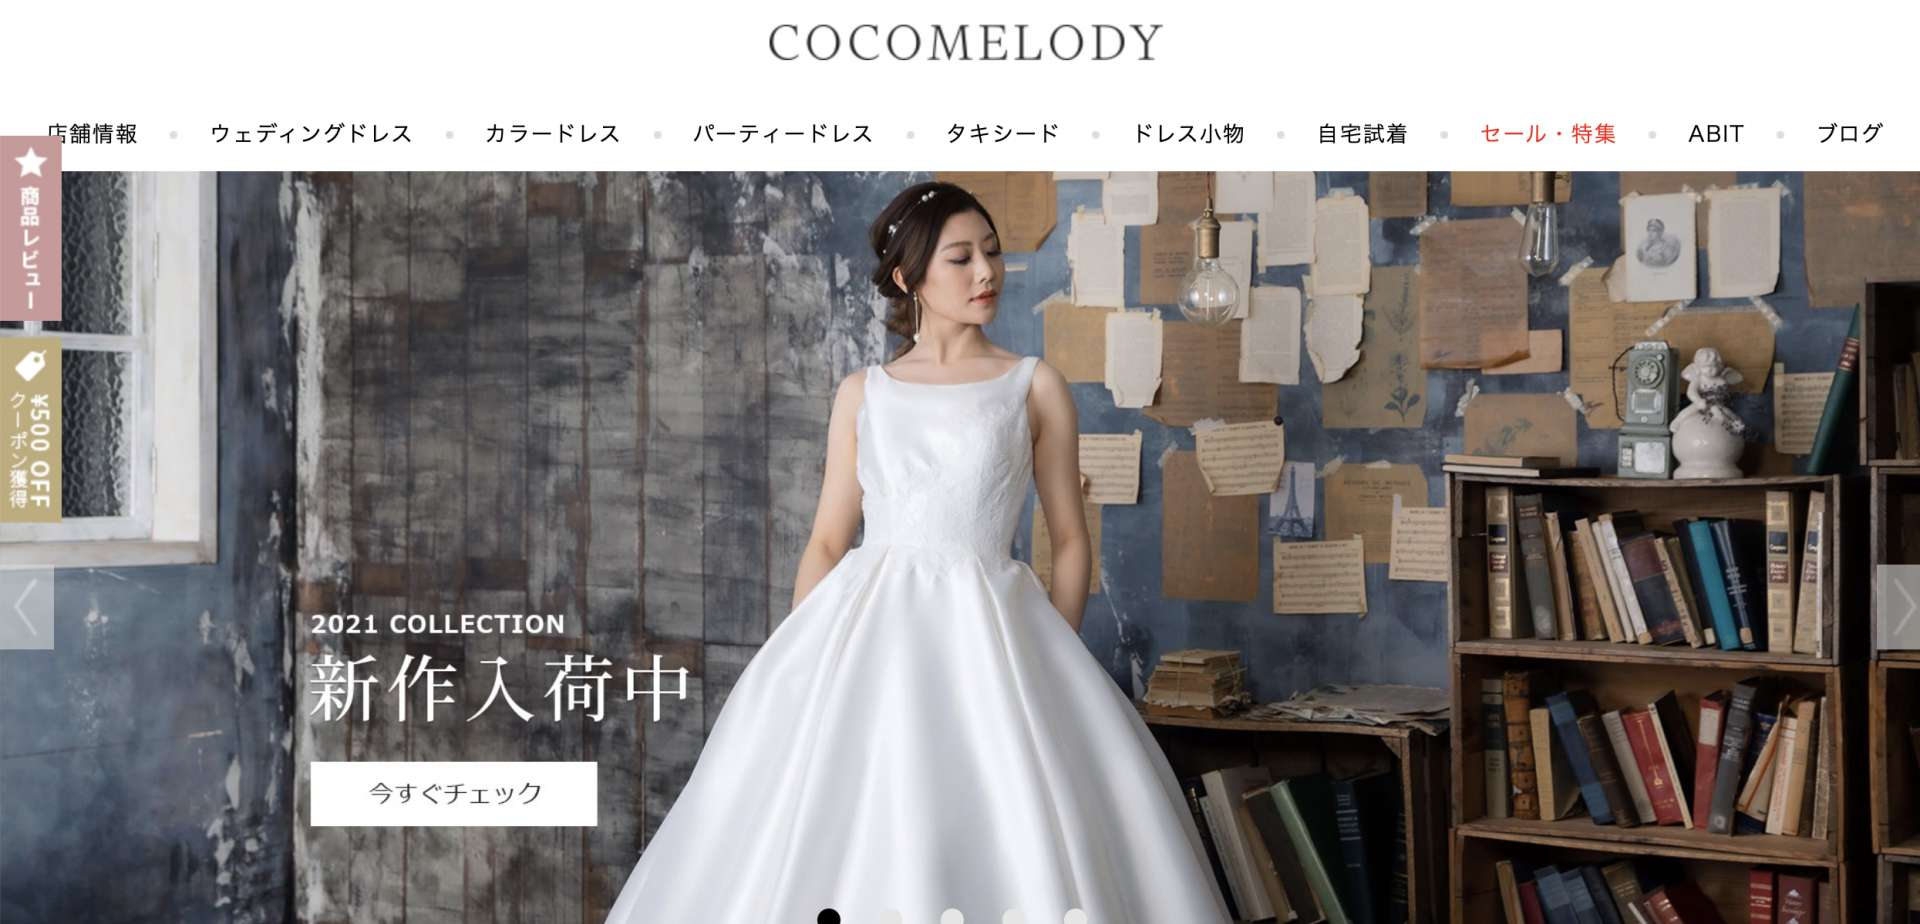 cocomelody 格安ドレス購入